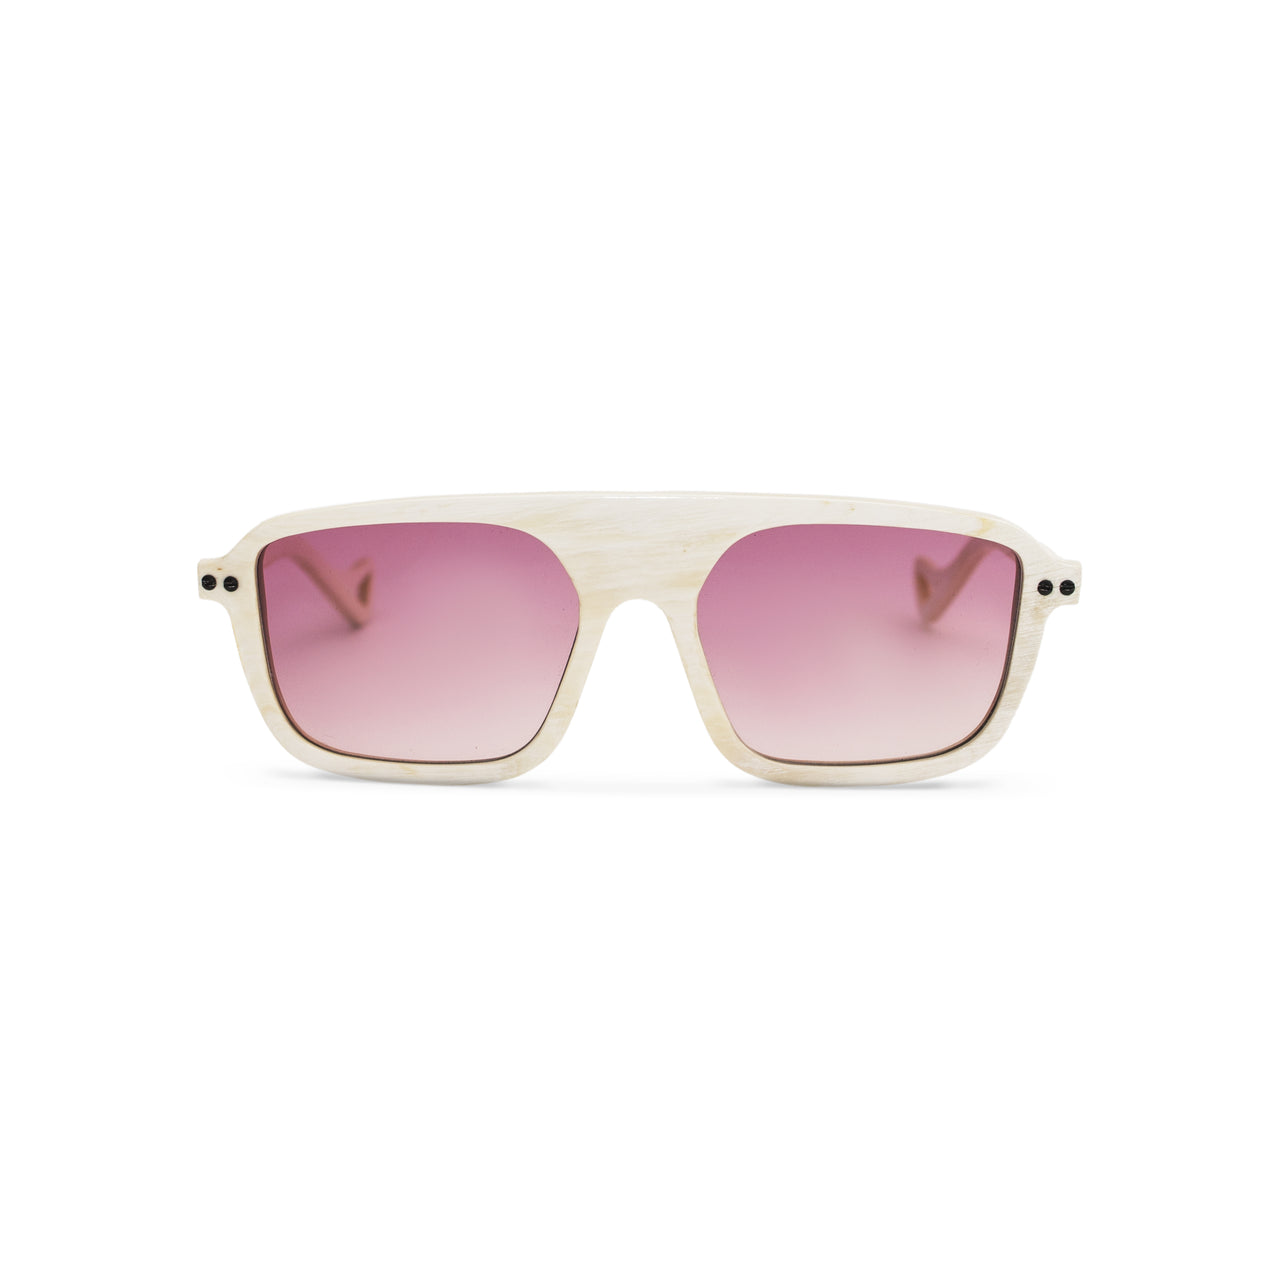 Horn. Oxen. Blush Lens. - BLYSZAK eyewear eyewear - eyewear, optical, sunglasses